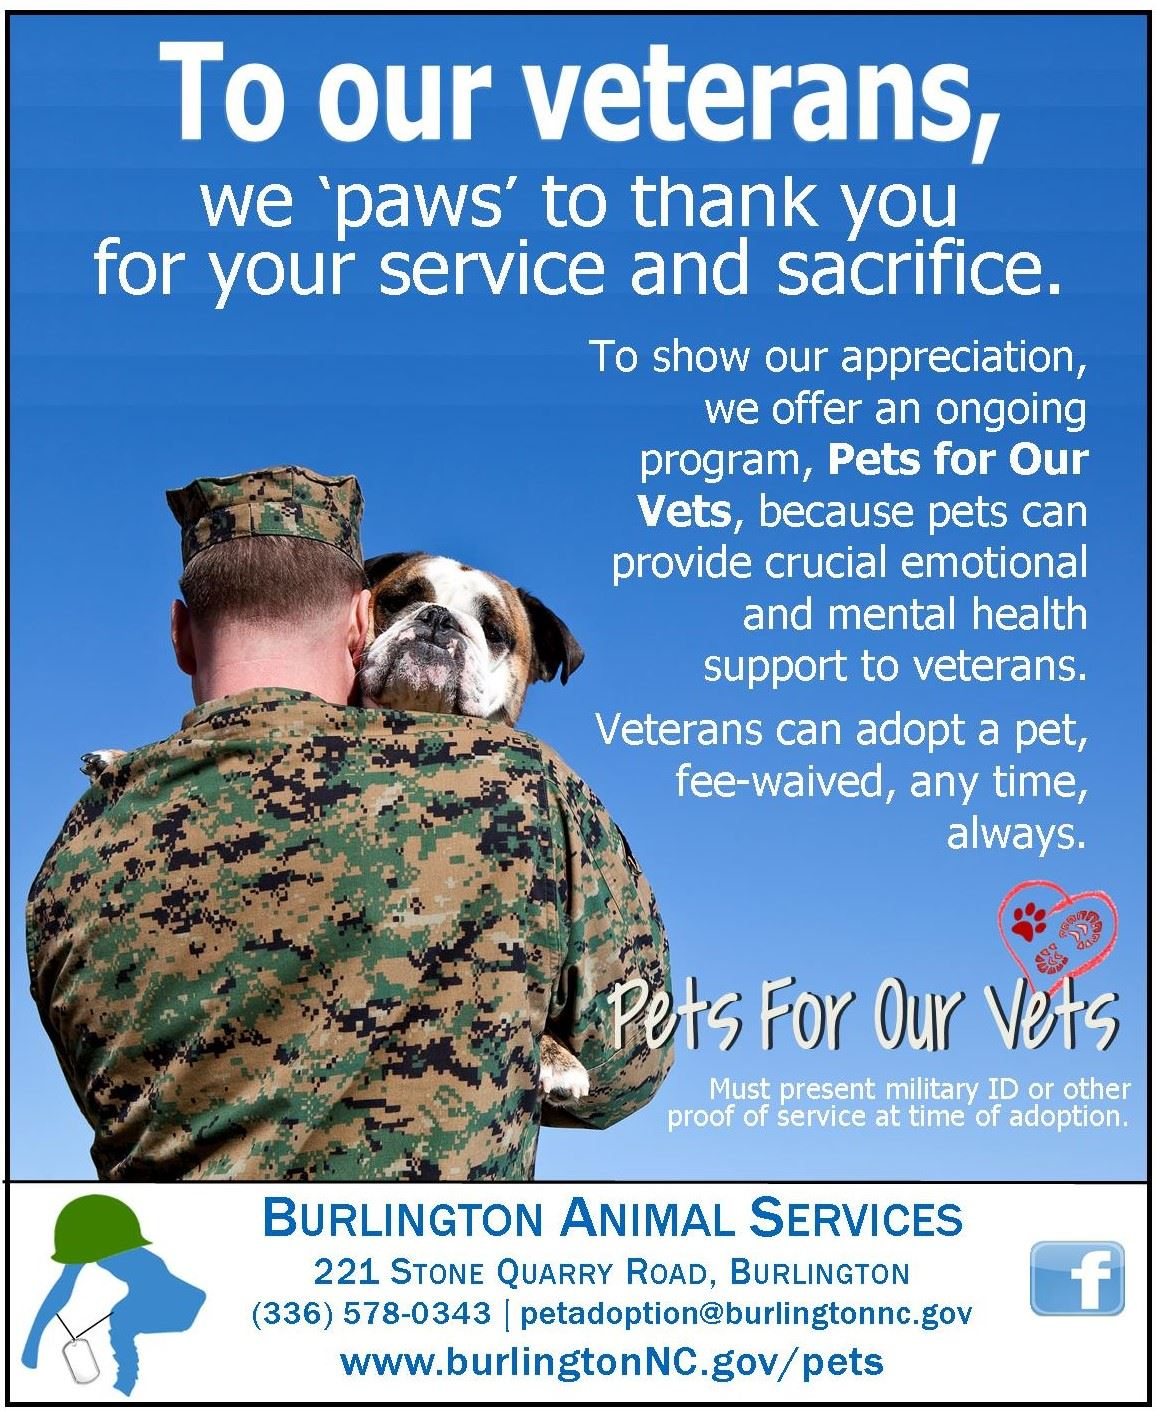 pets for our vets flier